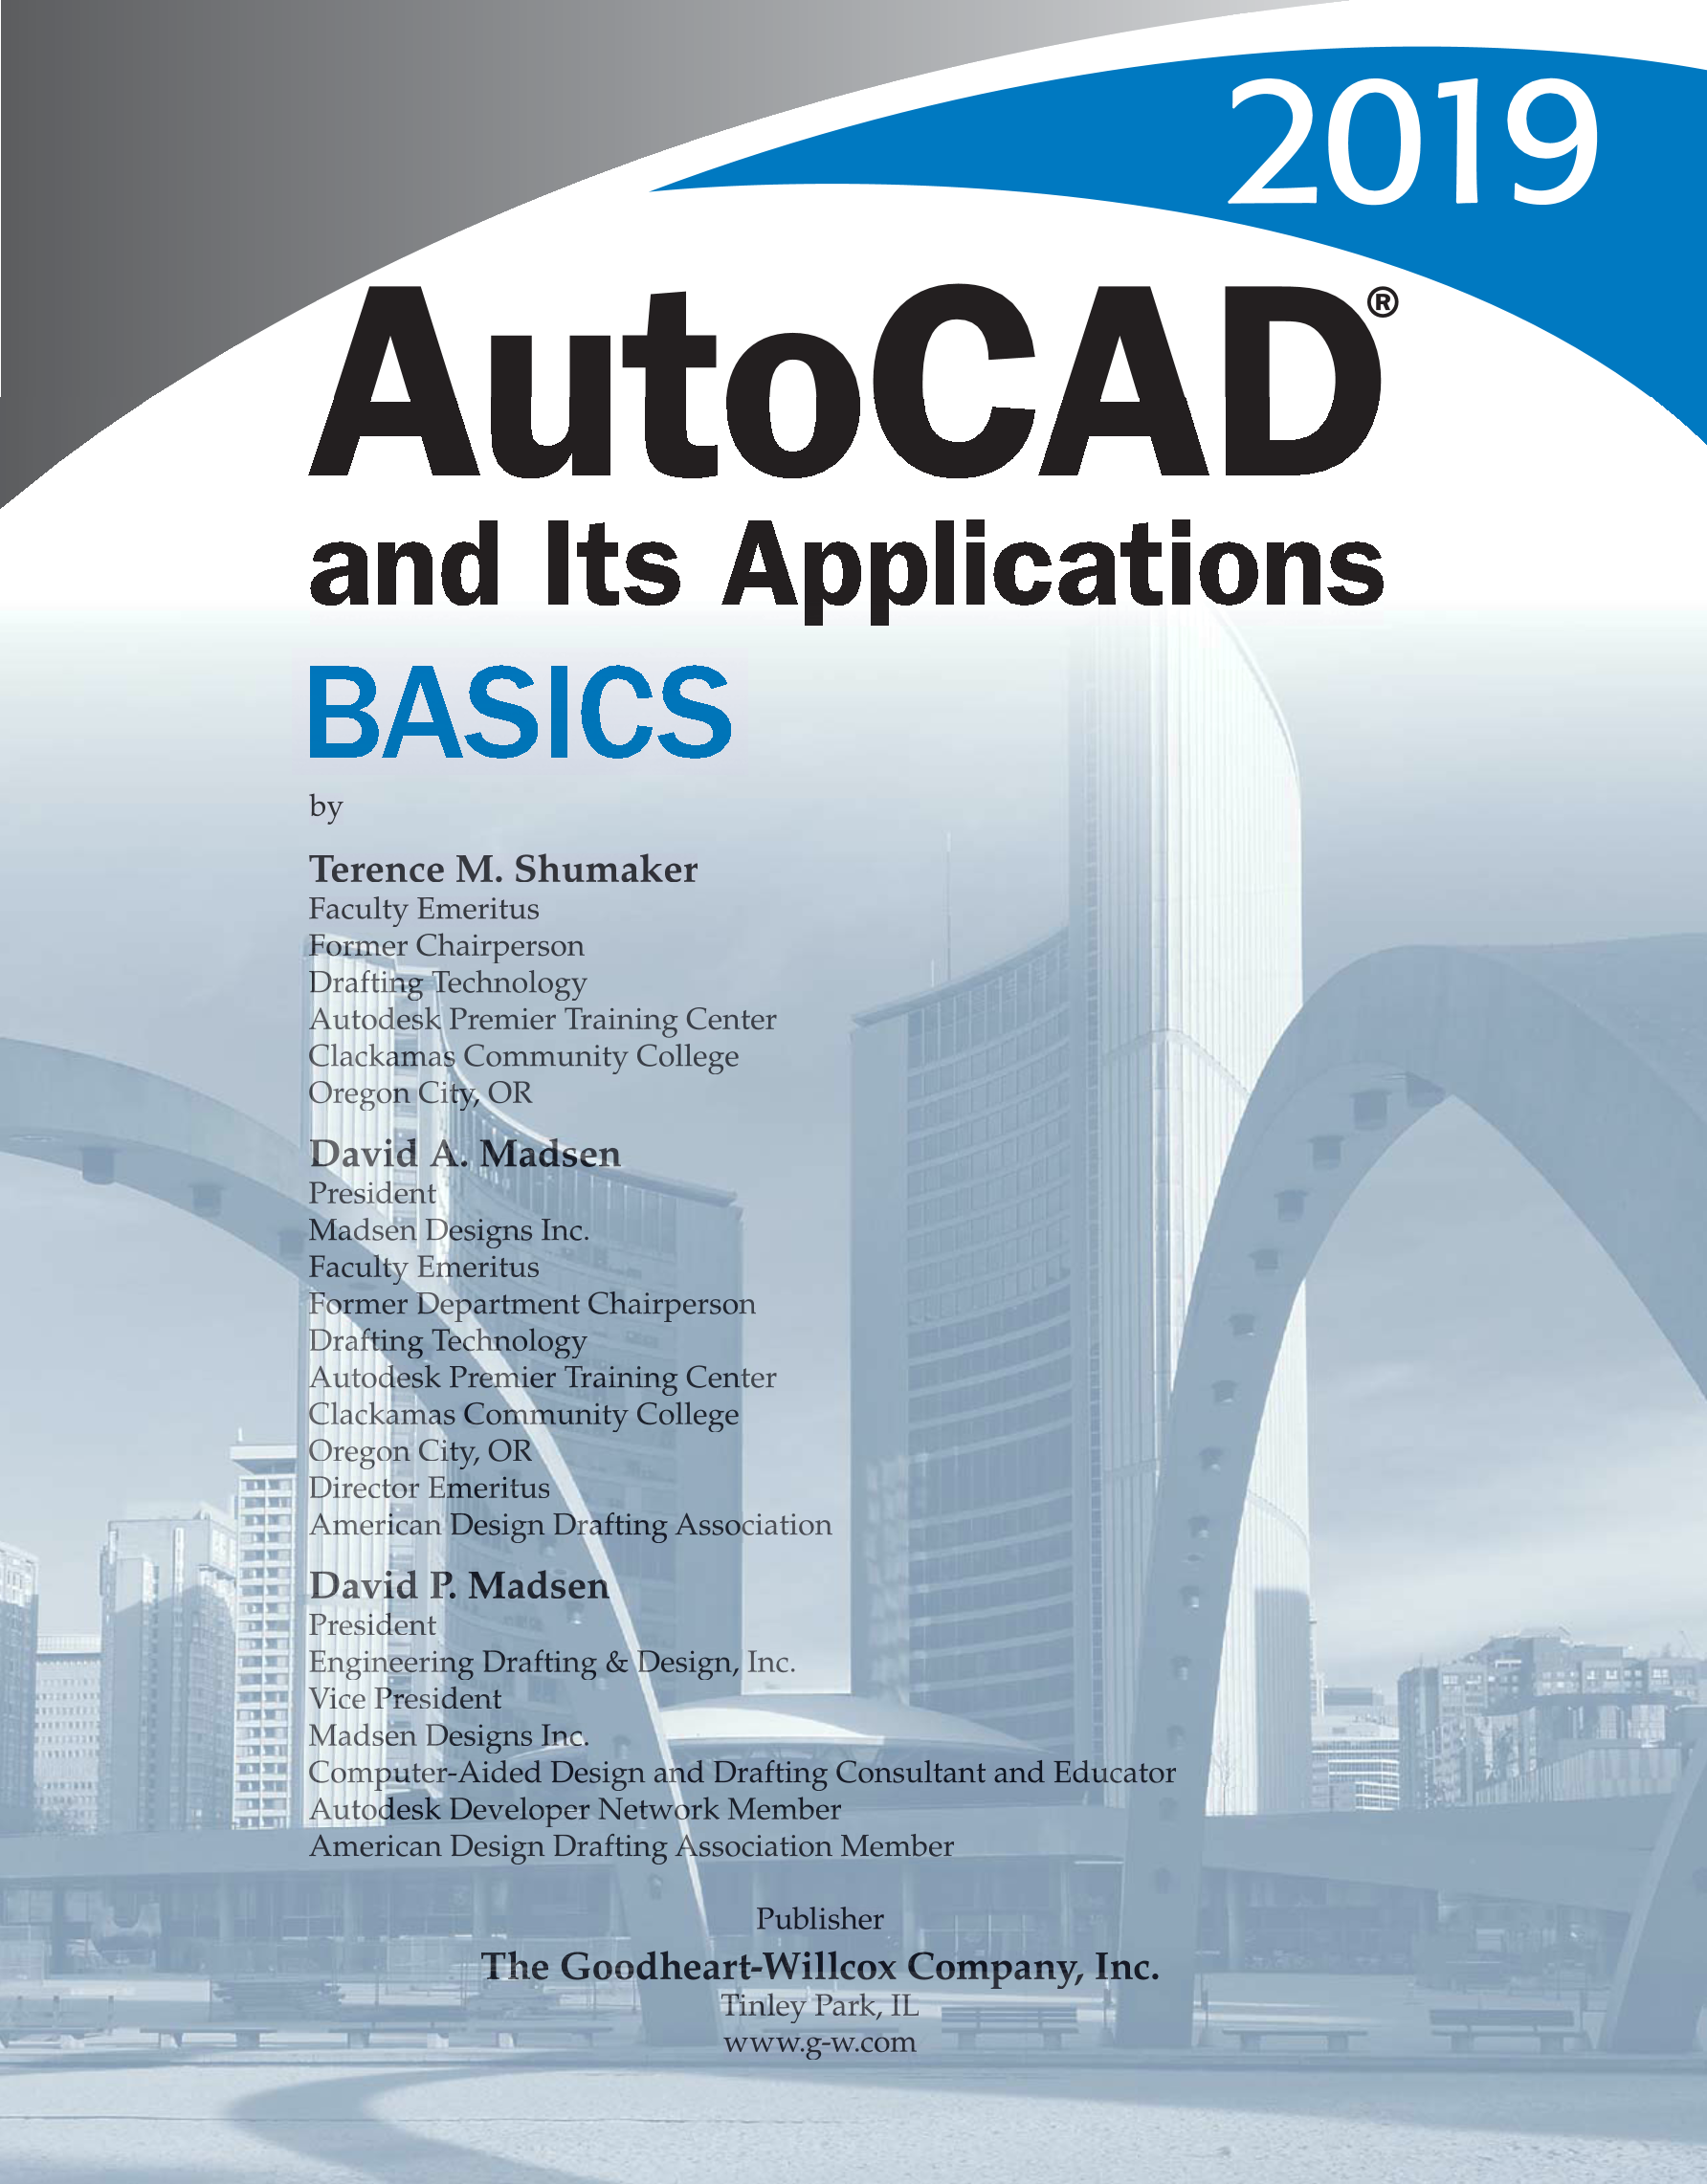 Printable: AutoCAD and Its Applications—Basics 2019, 26th Edition page i